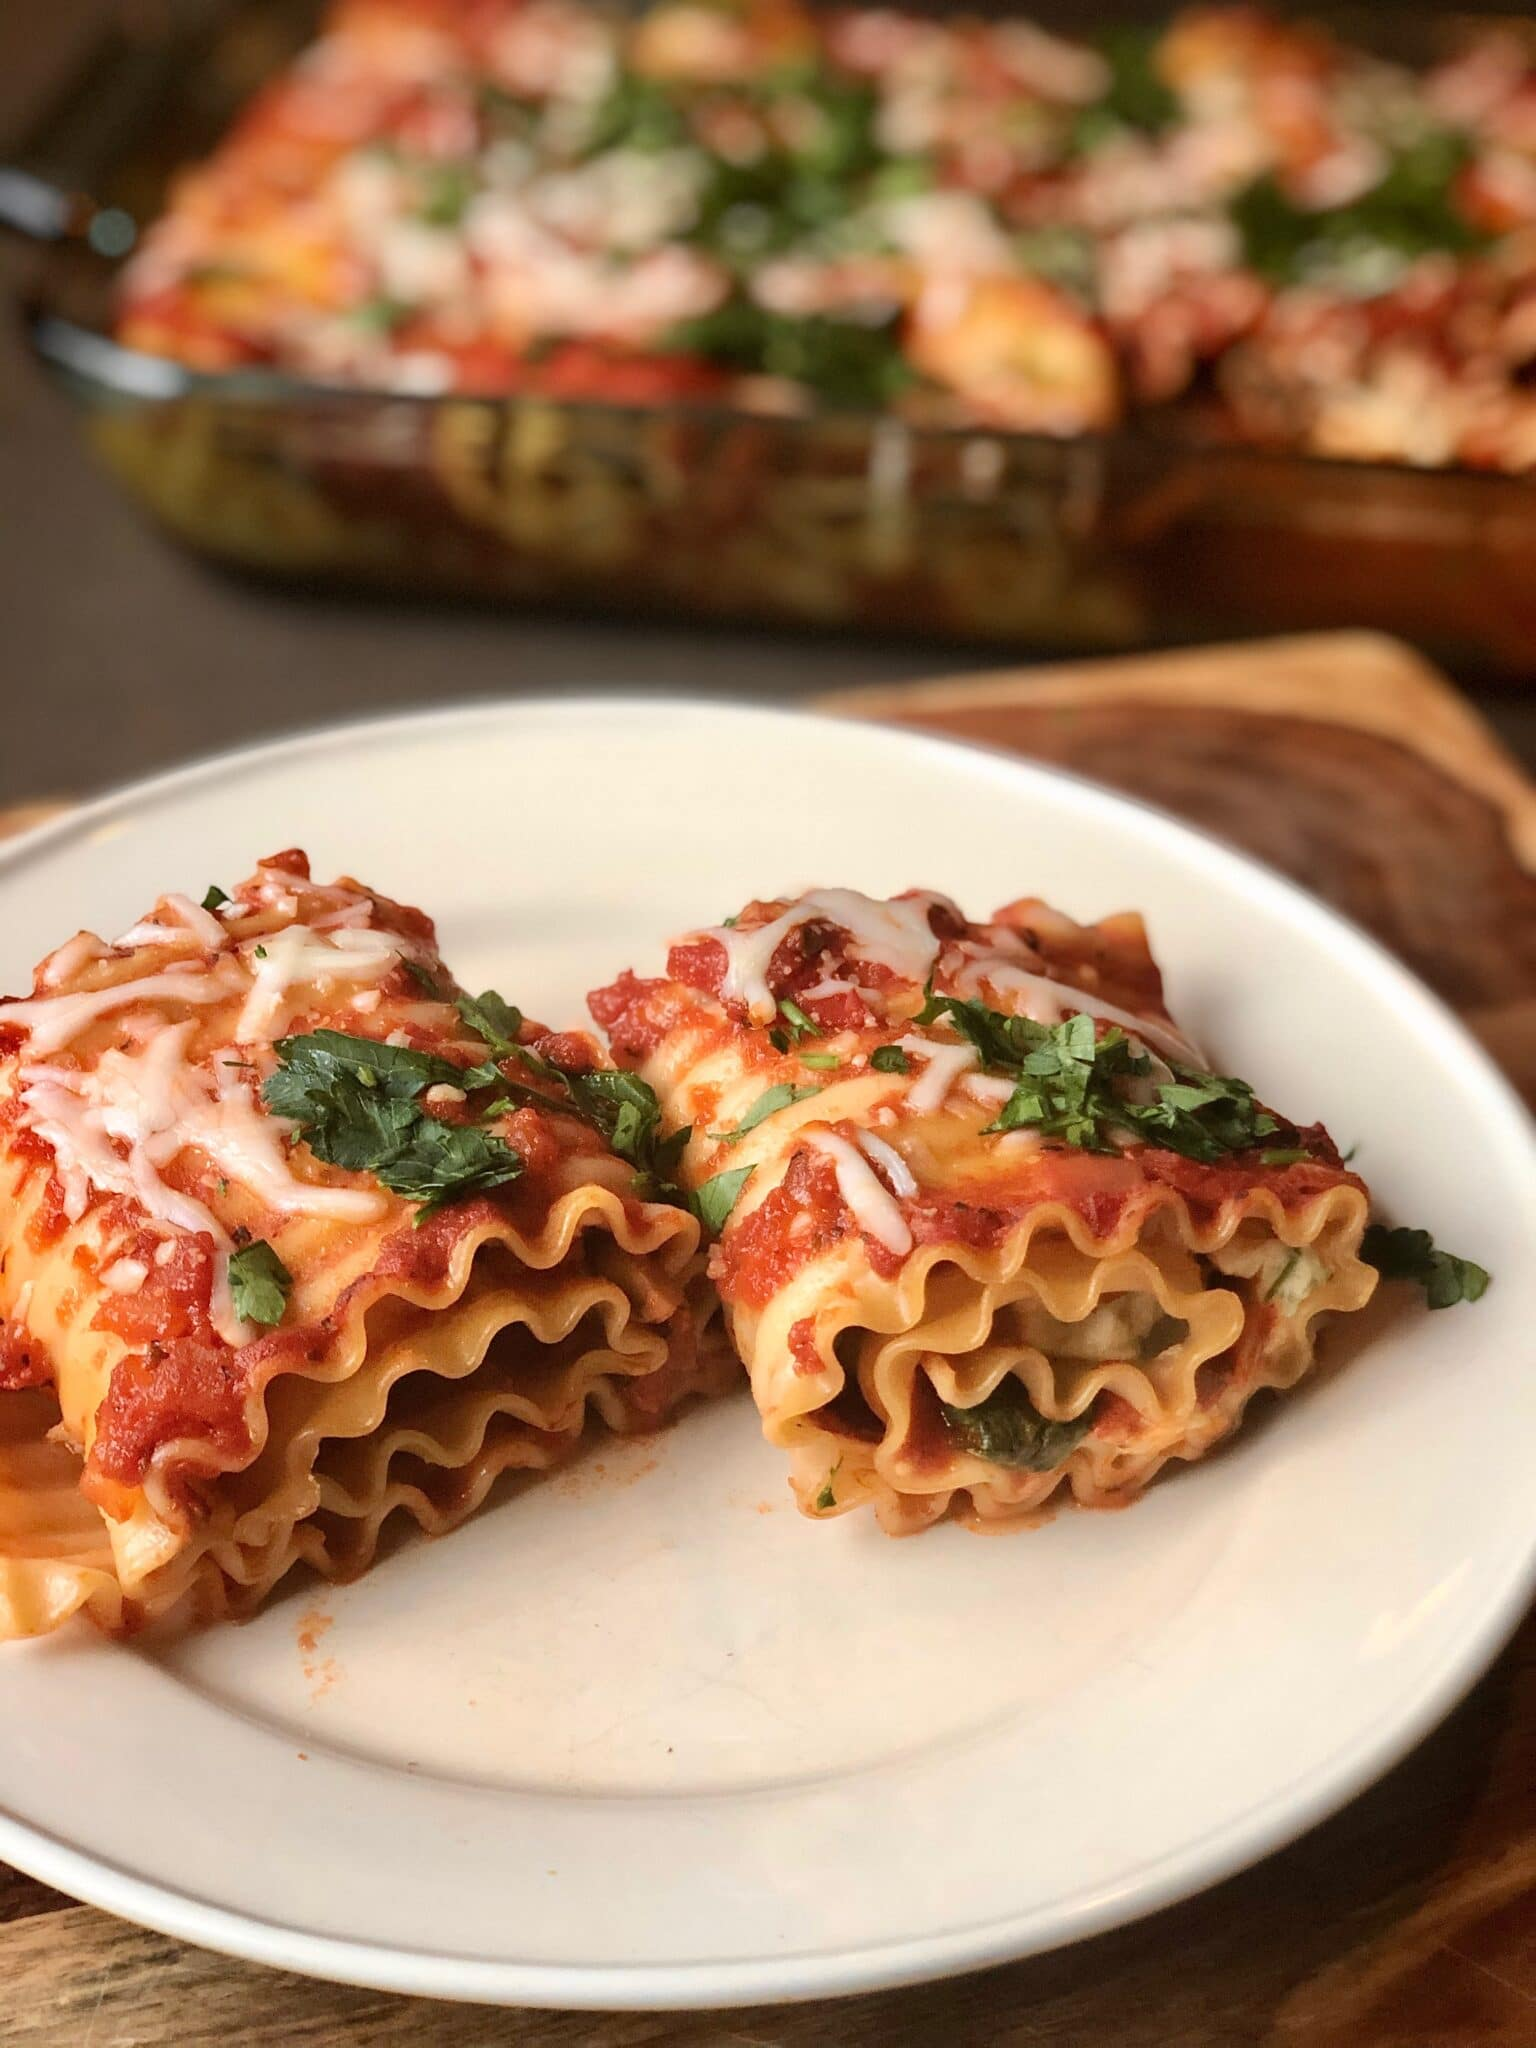 Vegetarian Lasagna Roll Ups For Meal Prep And Popping In The Freezer